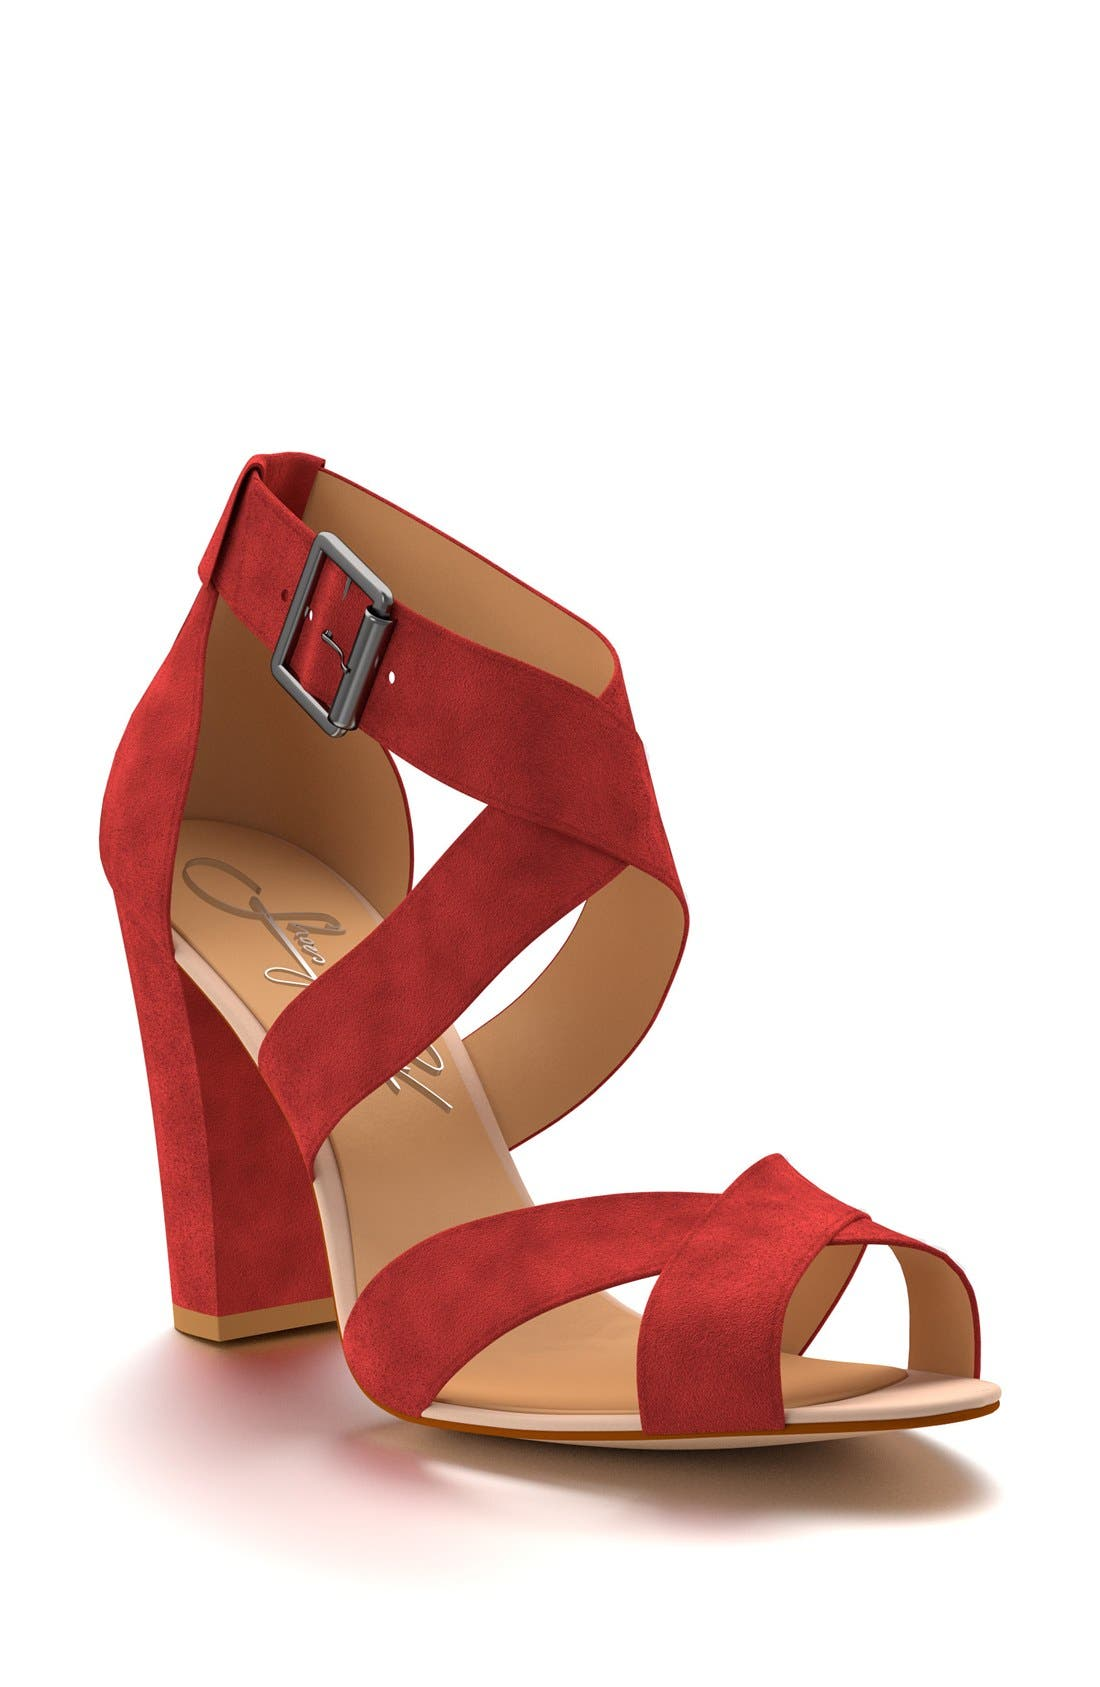 Shoes of Prey Crisscross Strap Block Heel Sandal (Women)